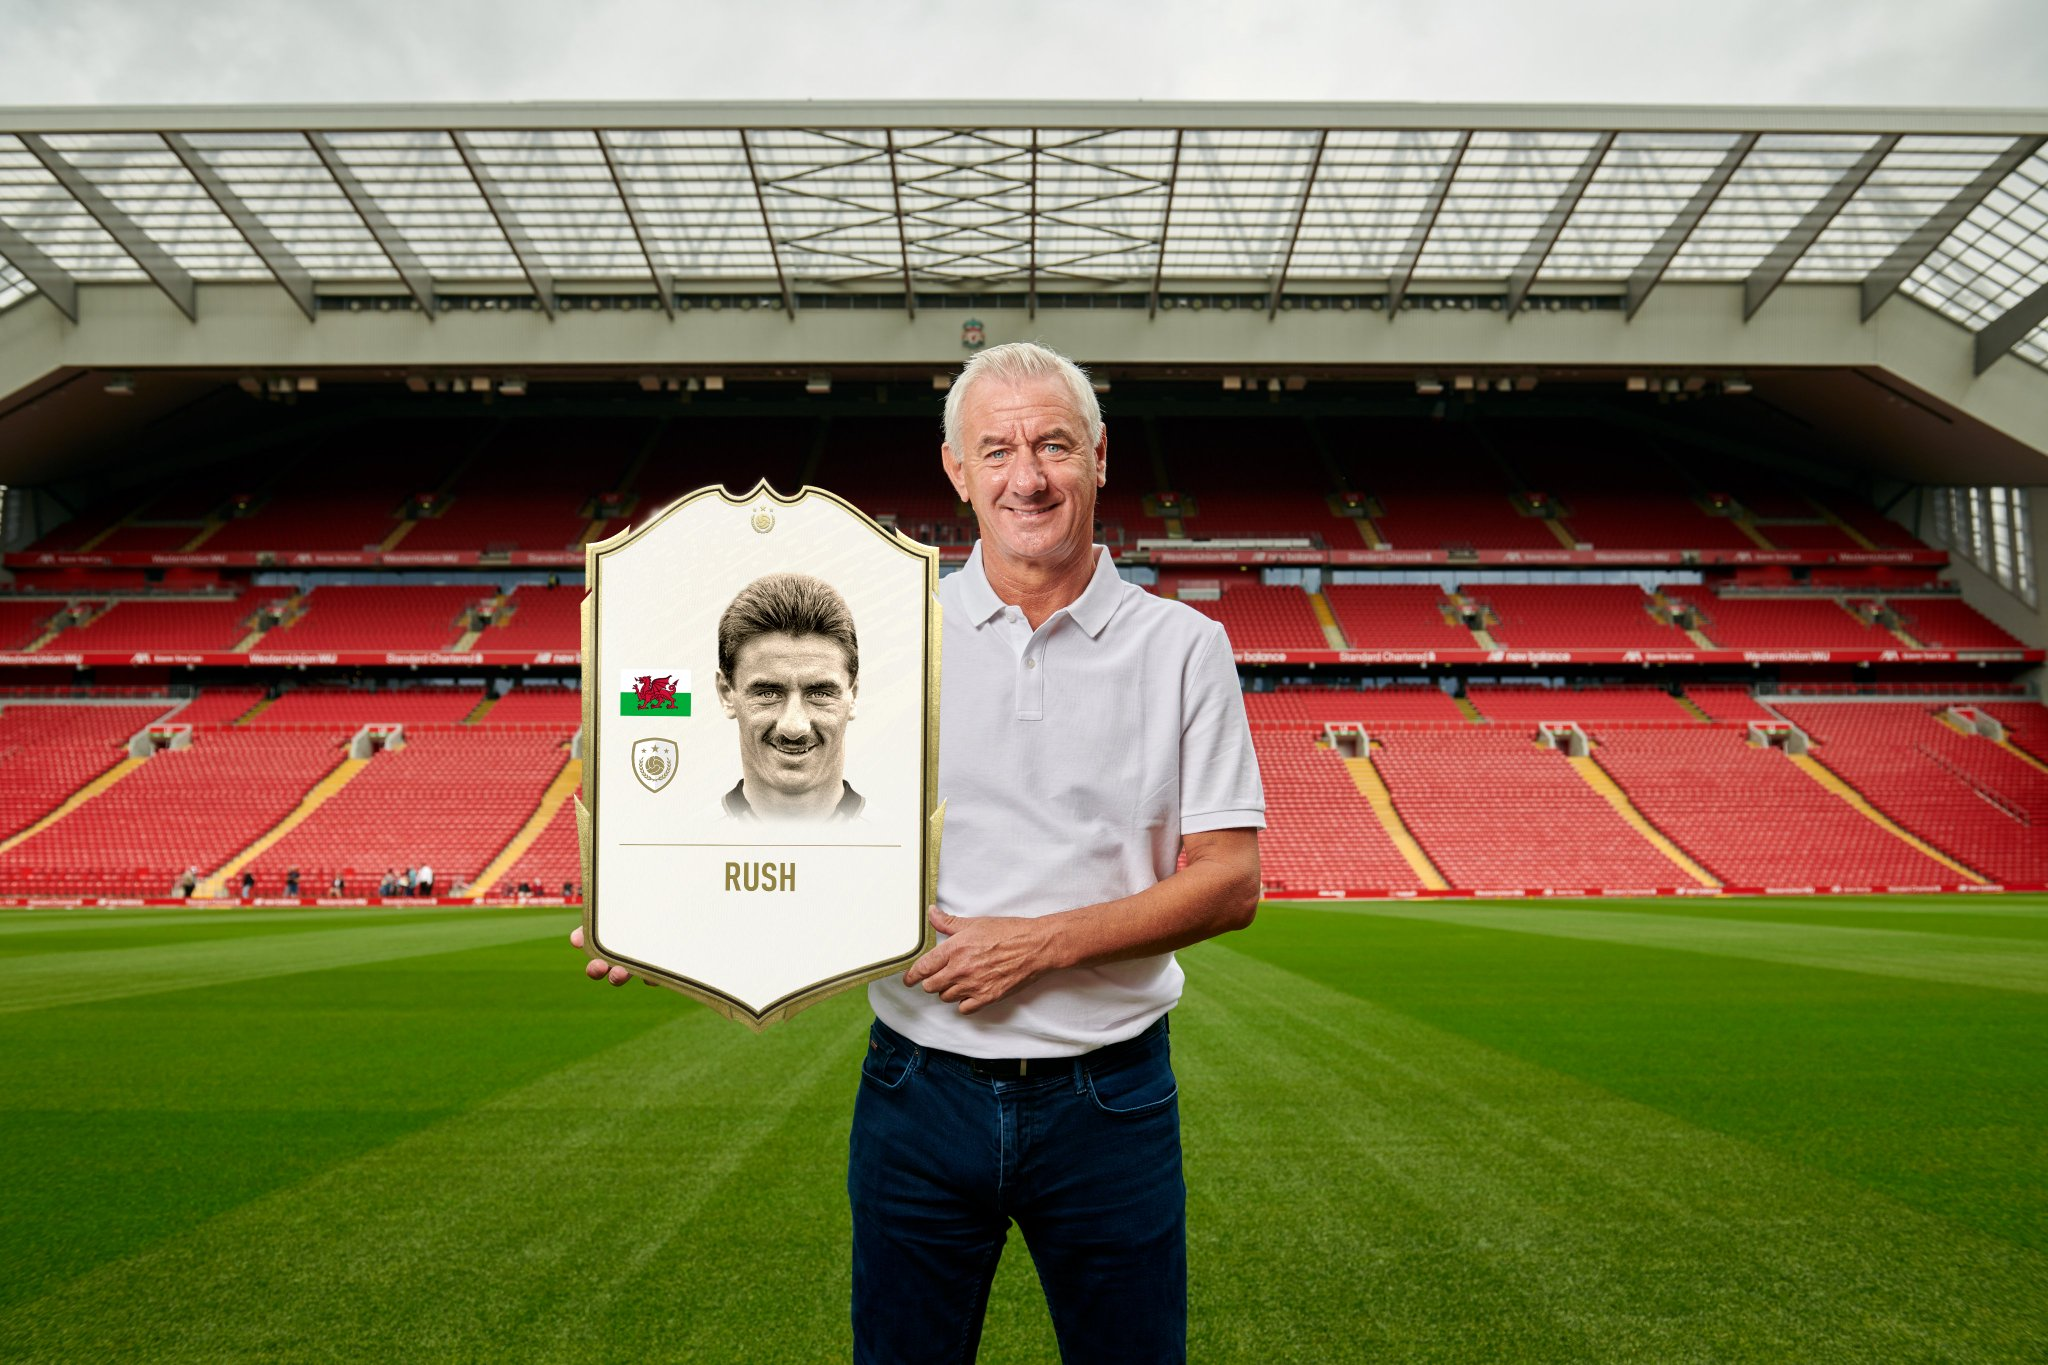 🙌 @Ian_Rush9 and @officialbarnesy are joining #FIFA20 as @EASPORTSFIFA Ultimate Team ICONS!   Rating prediction? 🤔👇 #FIFA20 https://t.co/hXkGBIqpqz